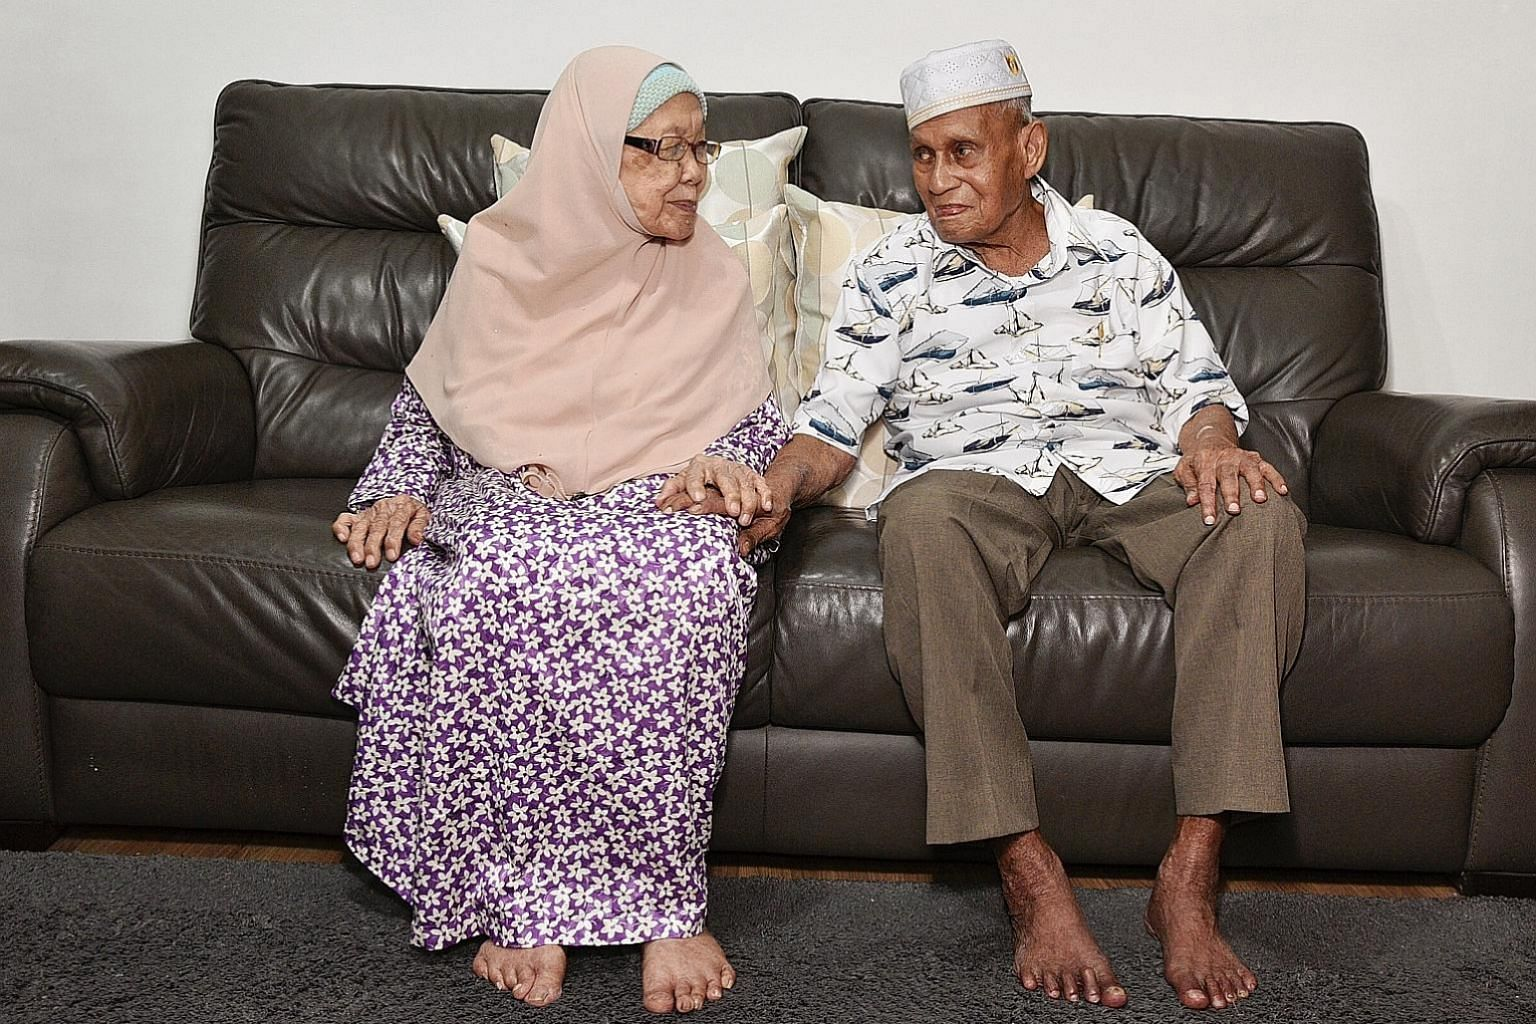 Centenarian Kassim Sultan, pictured above with his wife, Madam Tuminah Haji Siraj, 90, is among the 20,900 Singapore residents aged 90 and older as at June this year, a 94 per cent jump from the 10,800 people in this age group a decade ago. ST PHOTO: